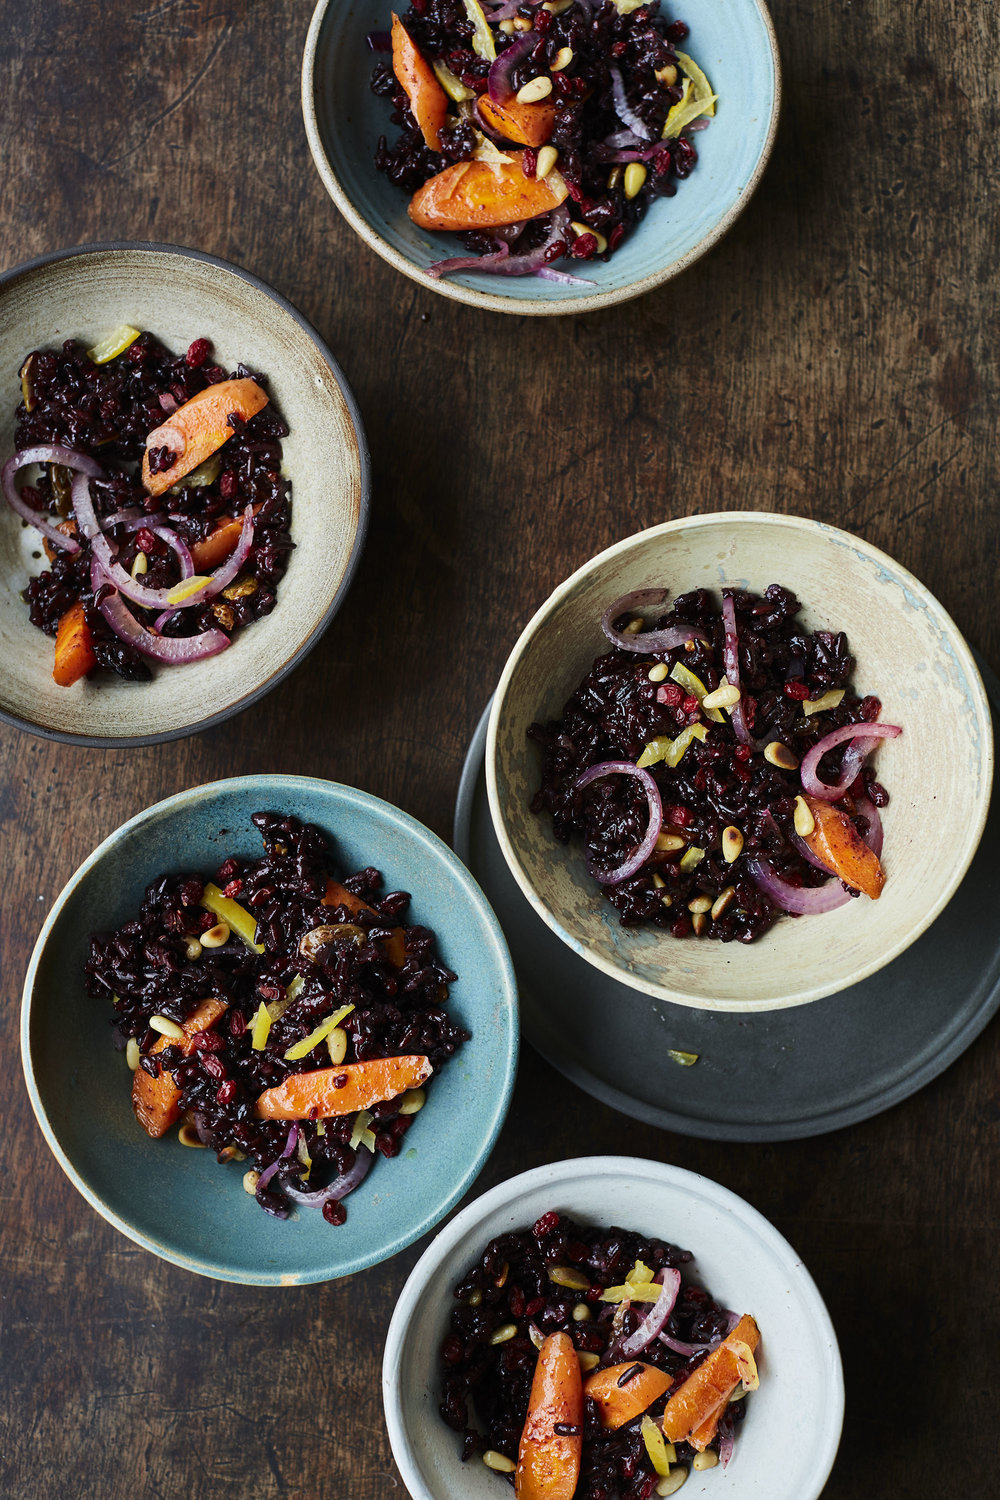 black rice salad   Black rice is highly anti-oxidant and deliciously rich and nutty. This salad combines gut friendly resistant starch with colourful anti-inflammatory veg.  Photo © Laura Edwards